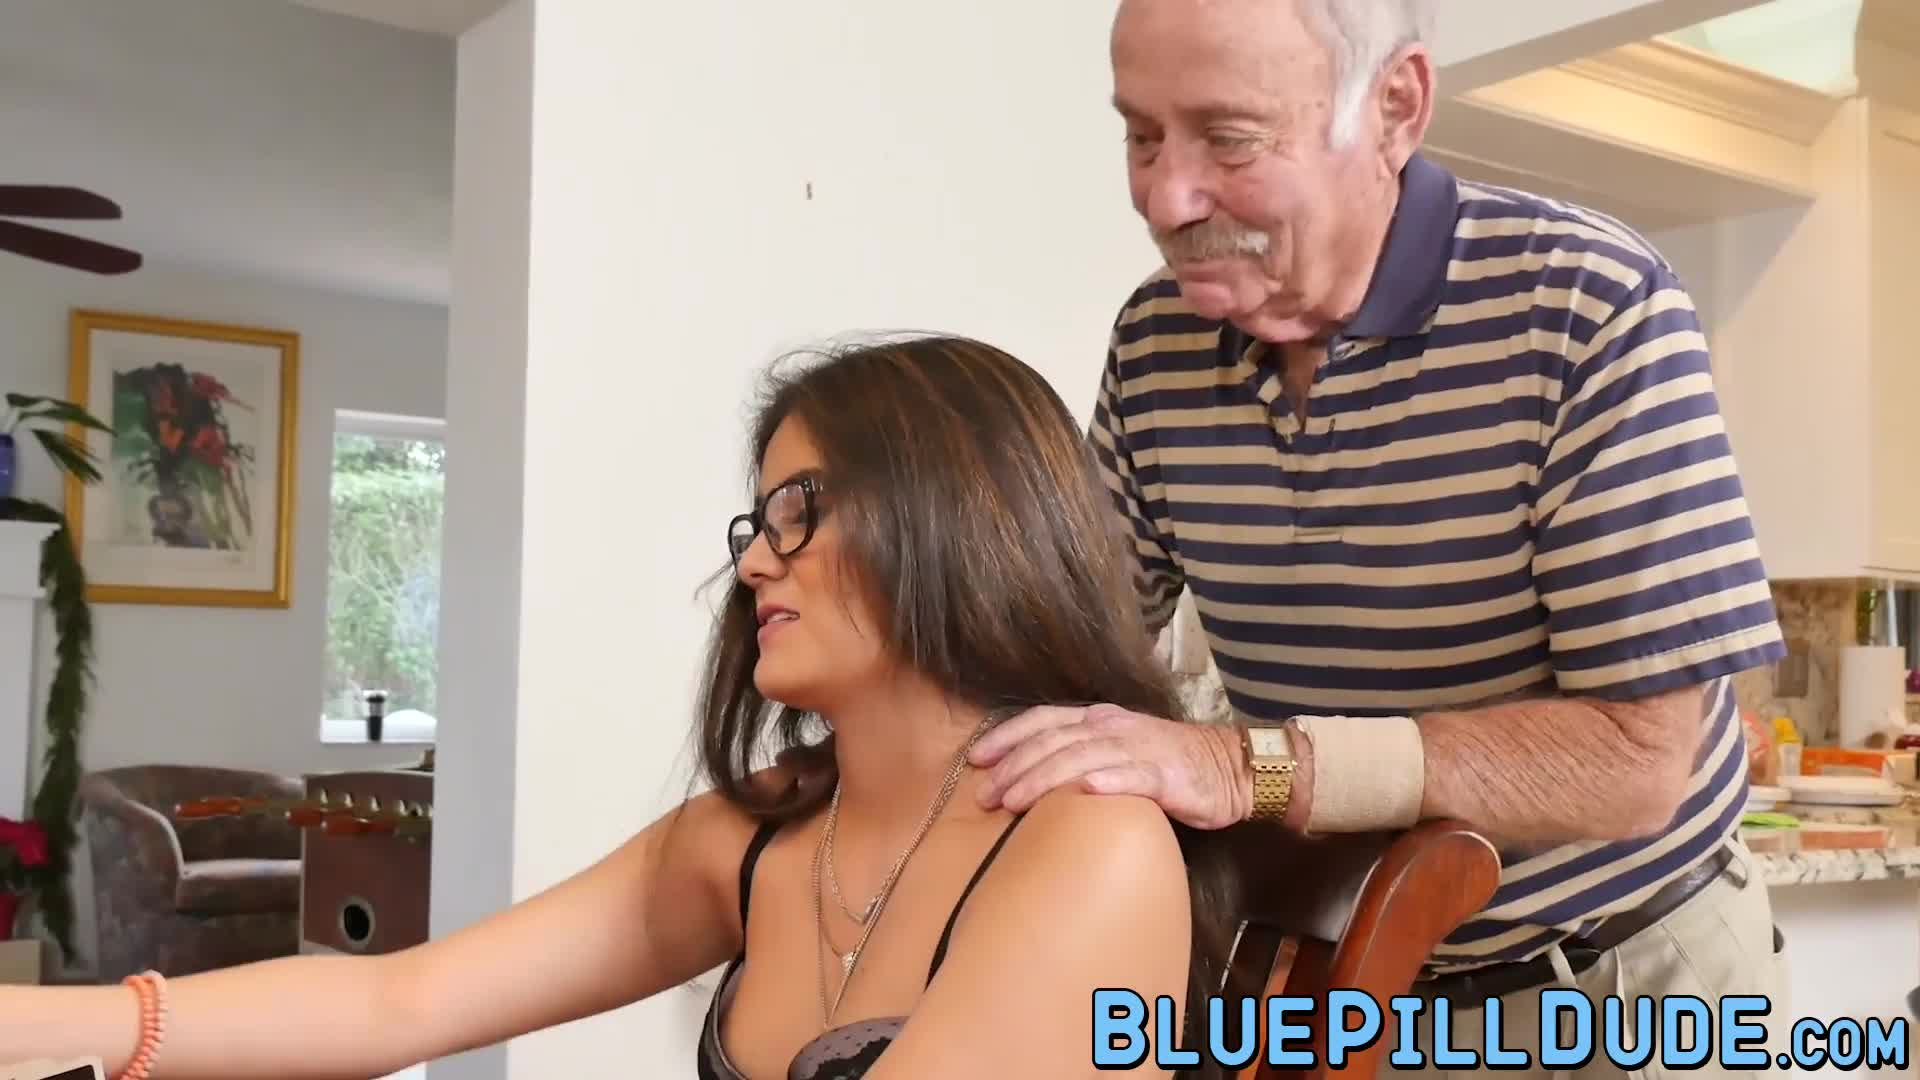 Alluring young babe with nice curves banged by grandpa